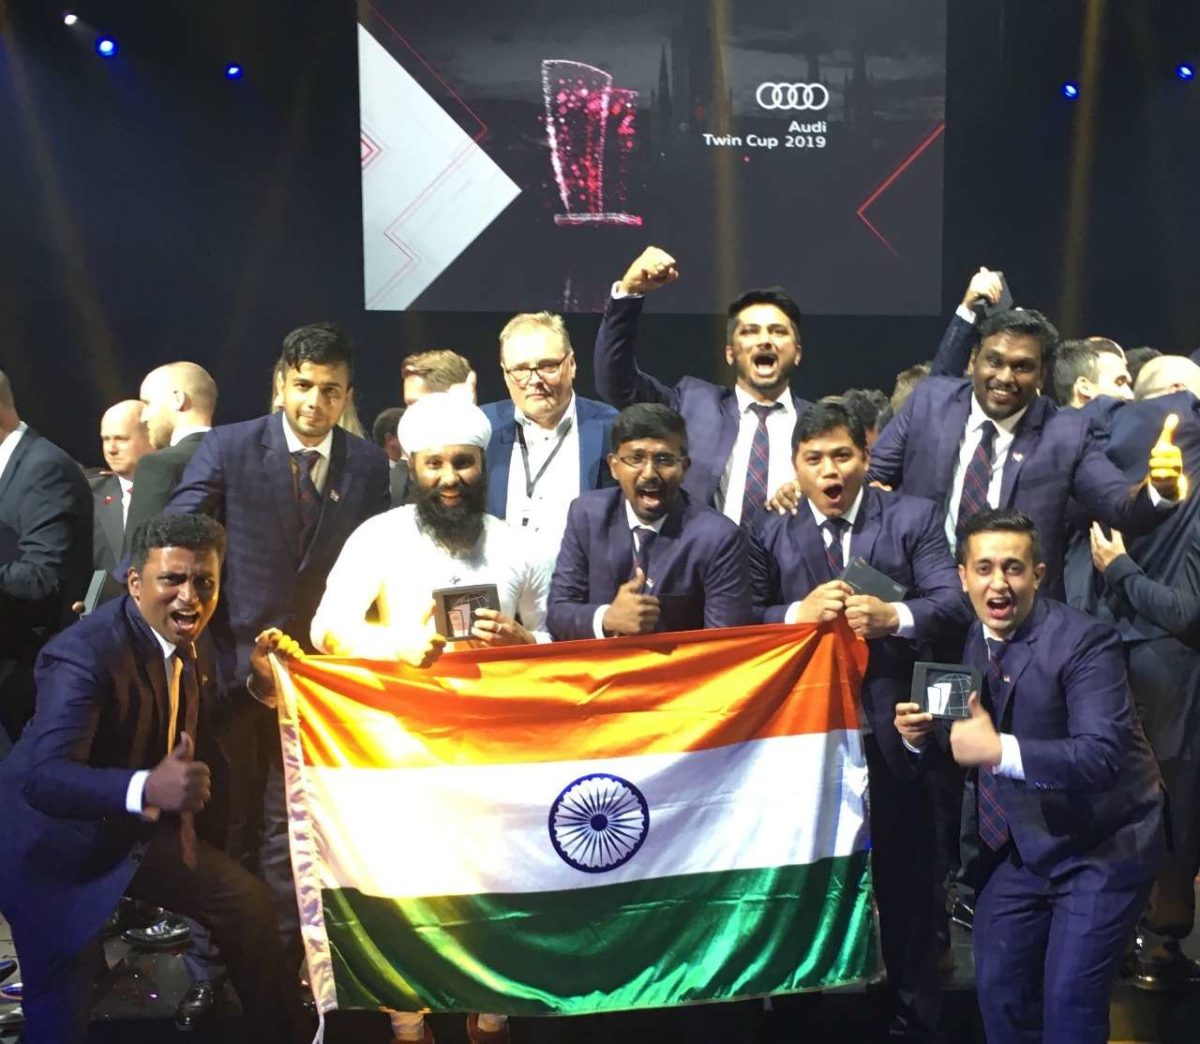 Audi Twin cup Indian team comes second